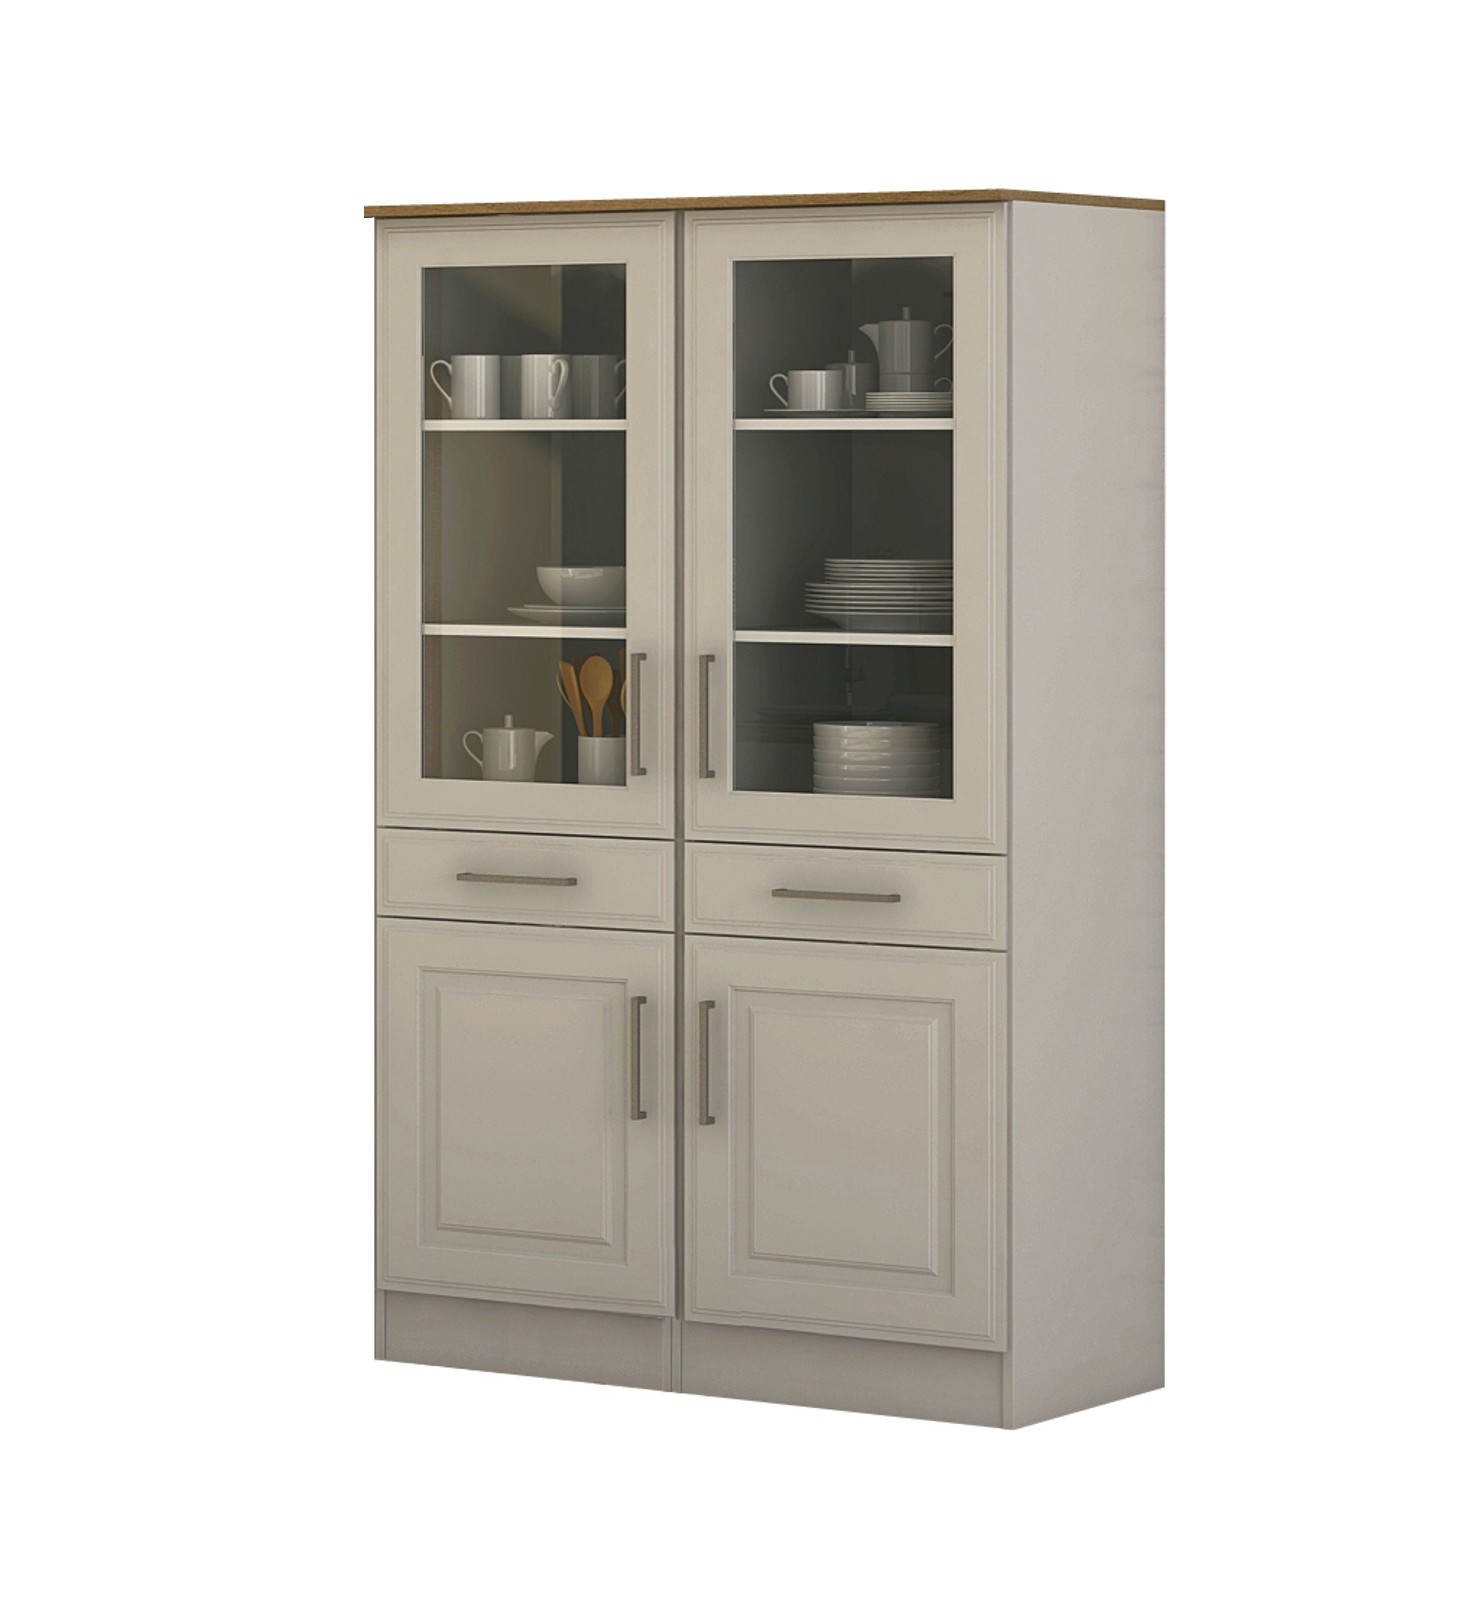 k chen vitrine k ln vitrinenschrank k chenschrank k chenm bel 100 cm weiss ebay. Black Bedroom Furniture Sets. Home Design Ideas